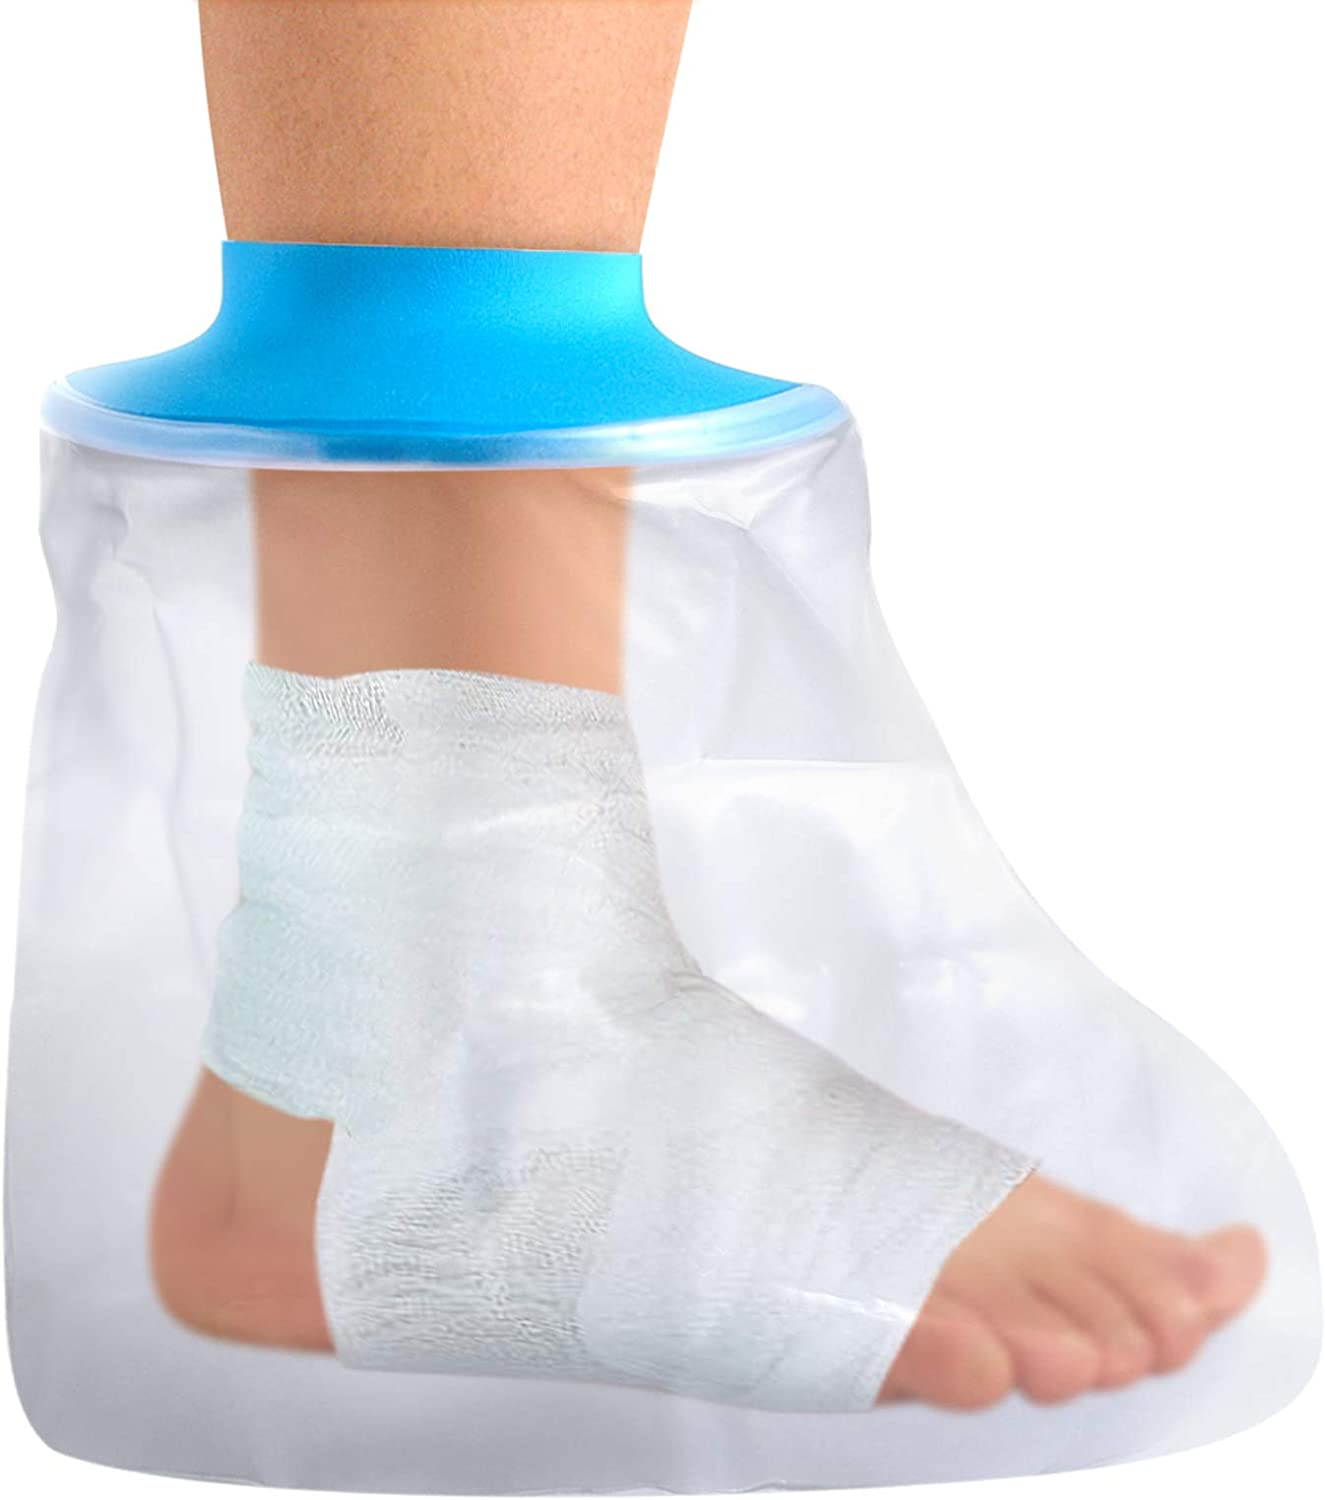 Adult Waterproof Foot Cast Cover Adult Watertight Wound Protector for Shower Bath, Keep Wounds Dry Bath Bandage Broken Foot,No Mark on Skin,Reusable Foot Cast Sleeve Bag Covers (Foot)